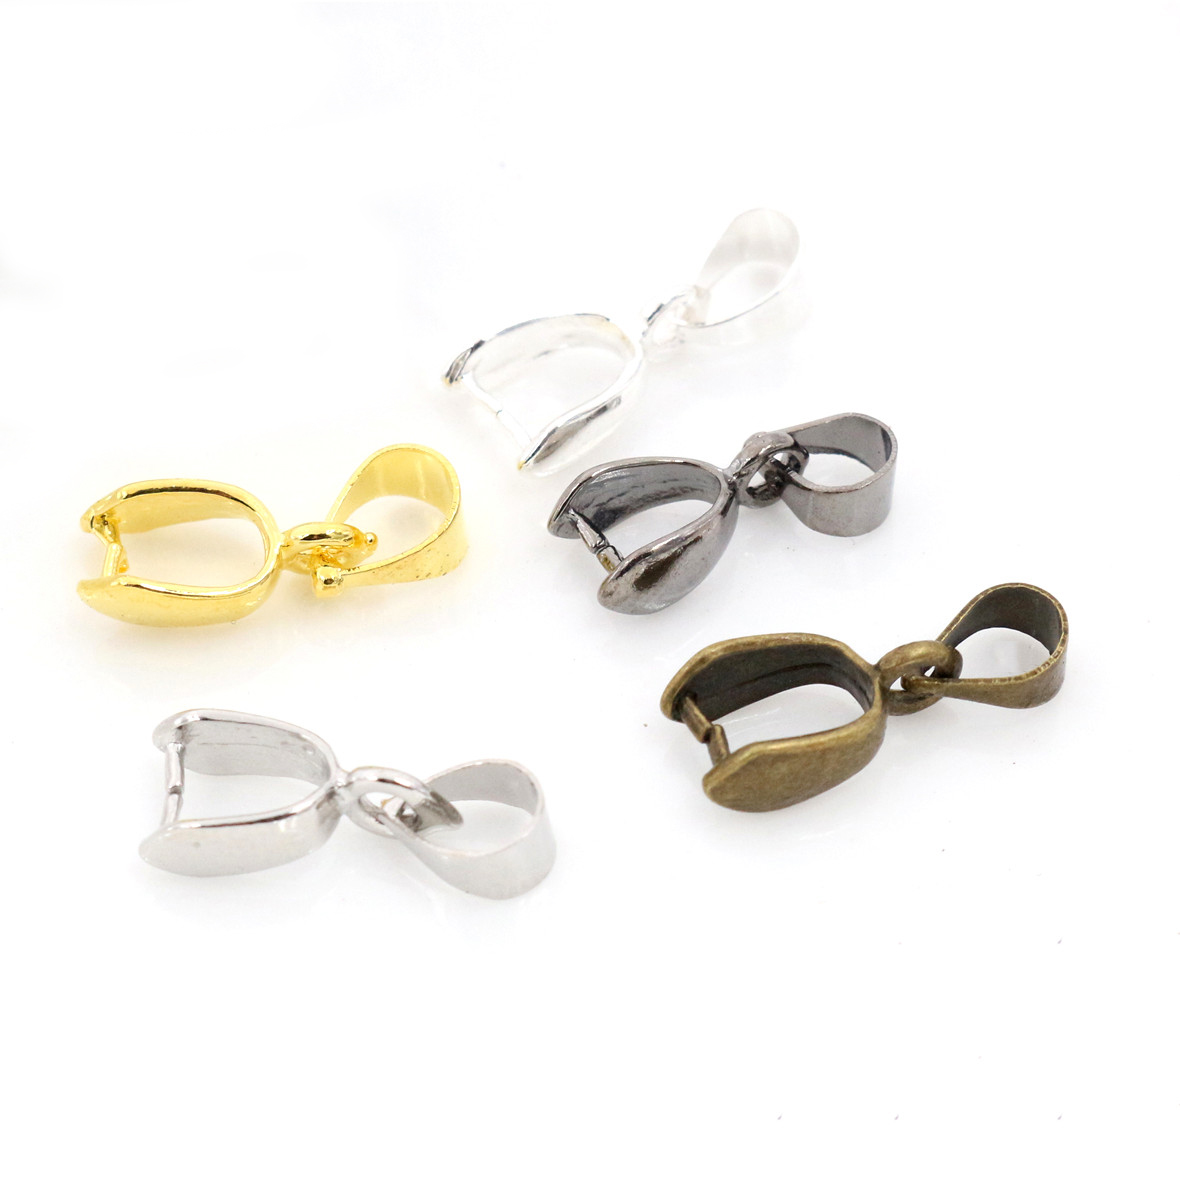 20pcs/lot 17x6mm 5 Colors Plated Pendants Clasps Clips Bails Connectors Copper Charm Bail Beads Jewelry Findings